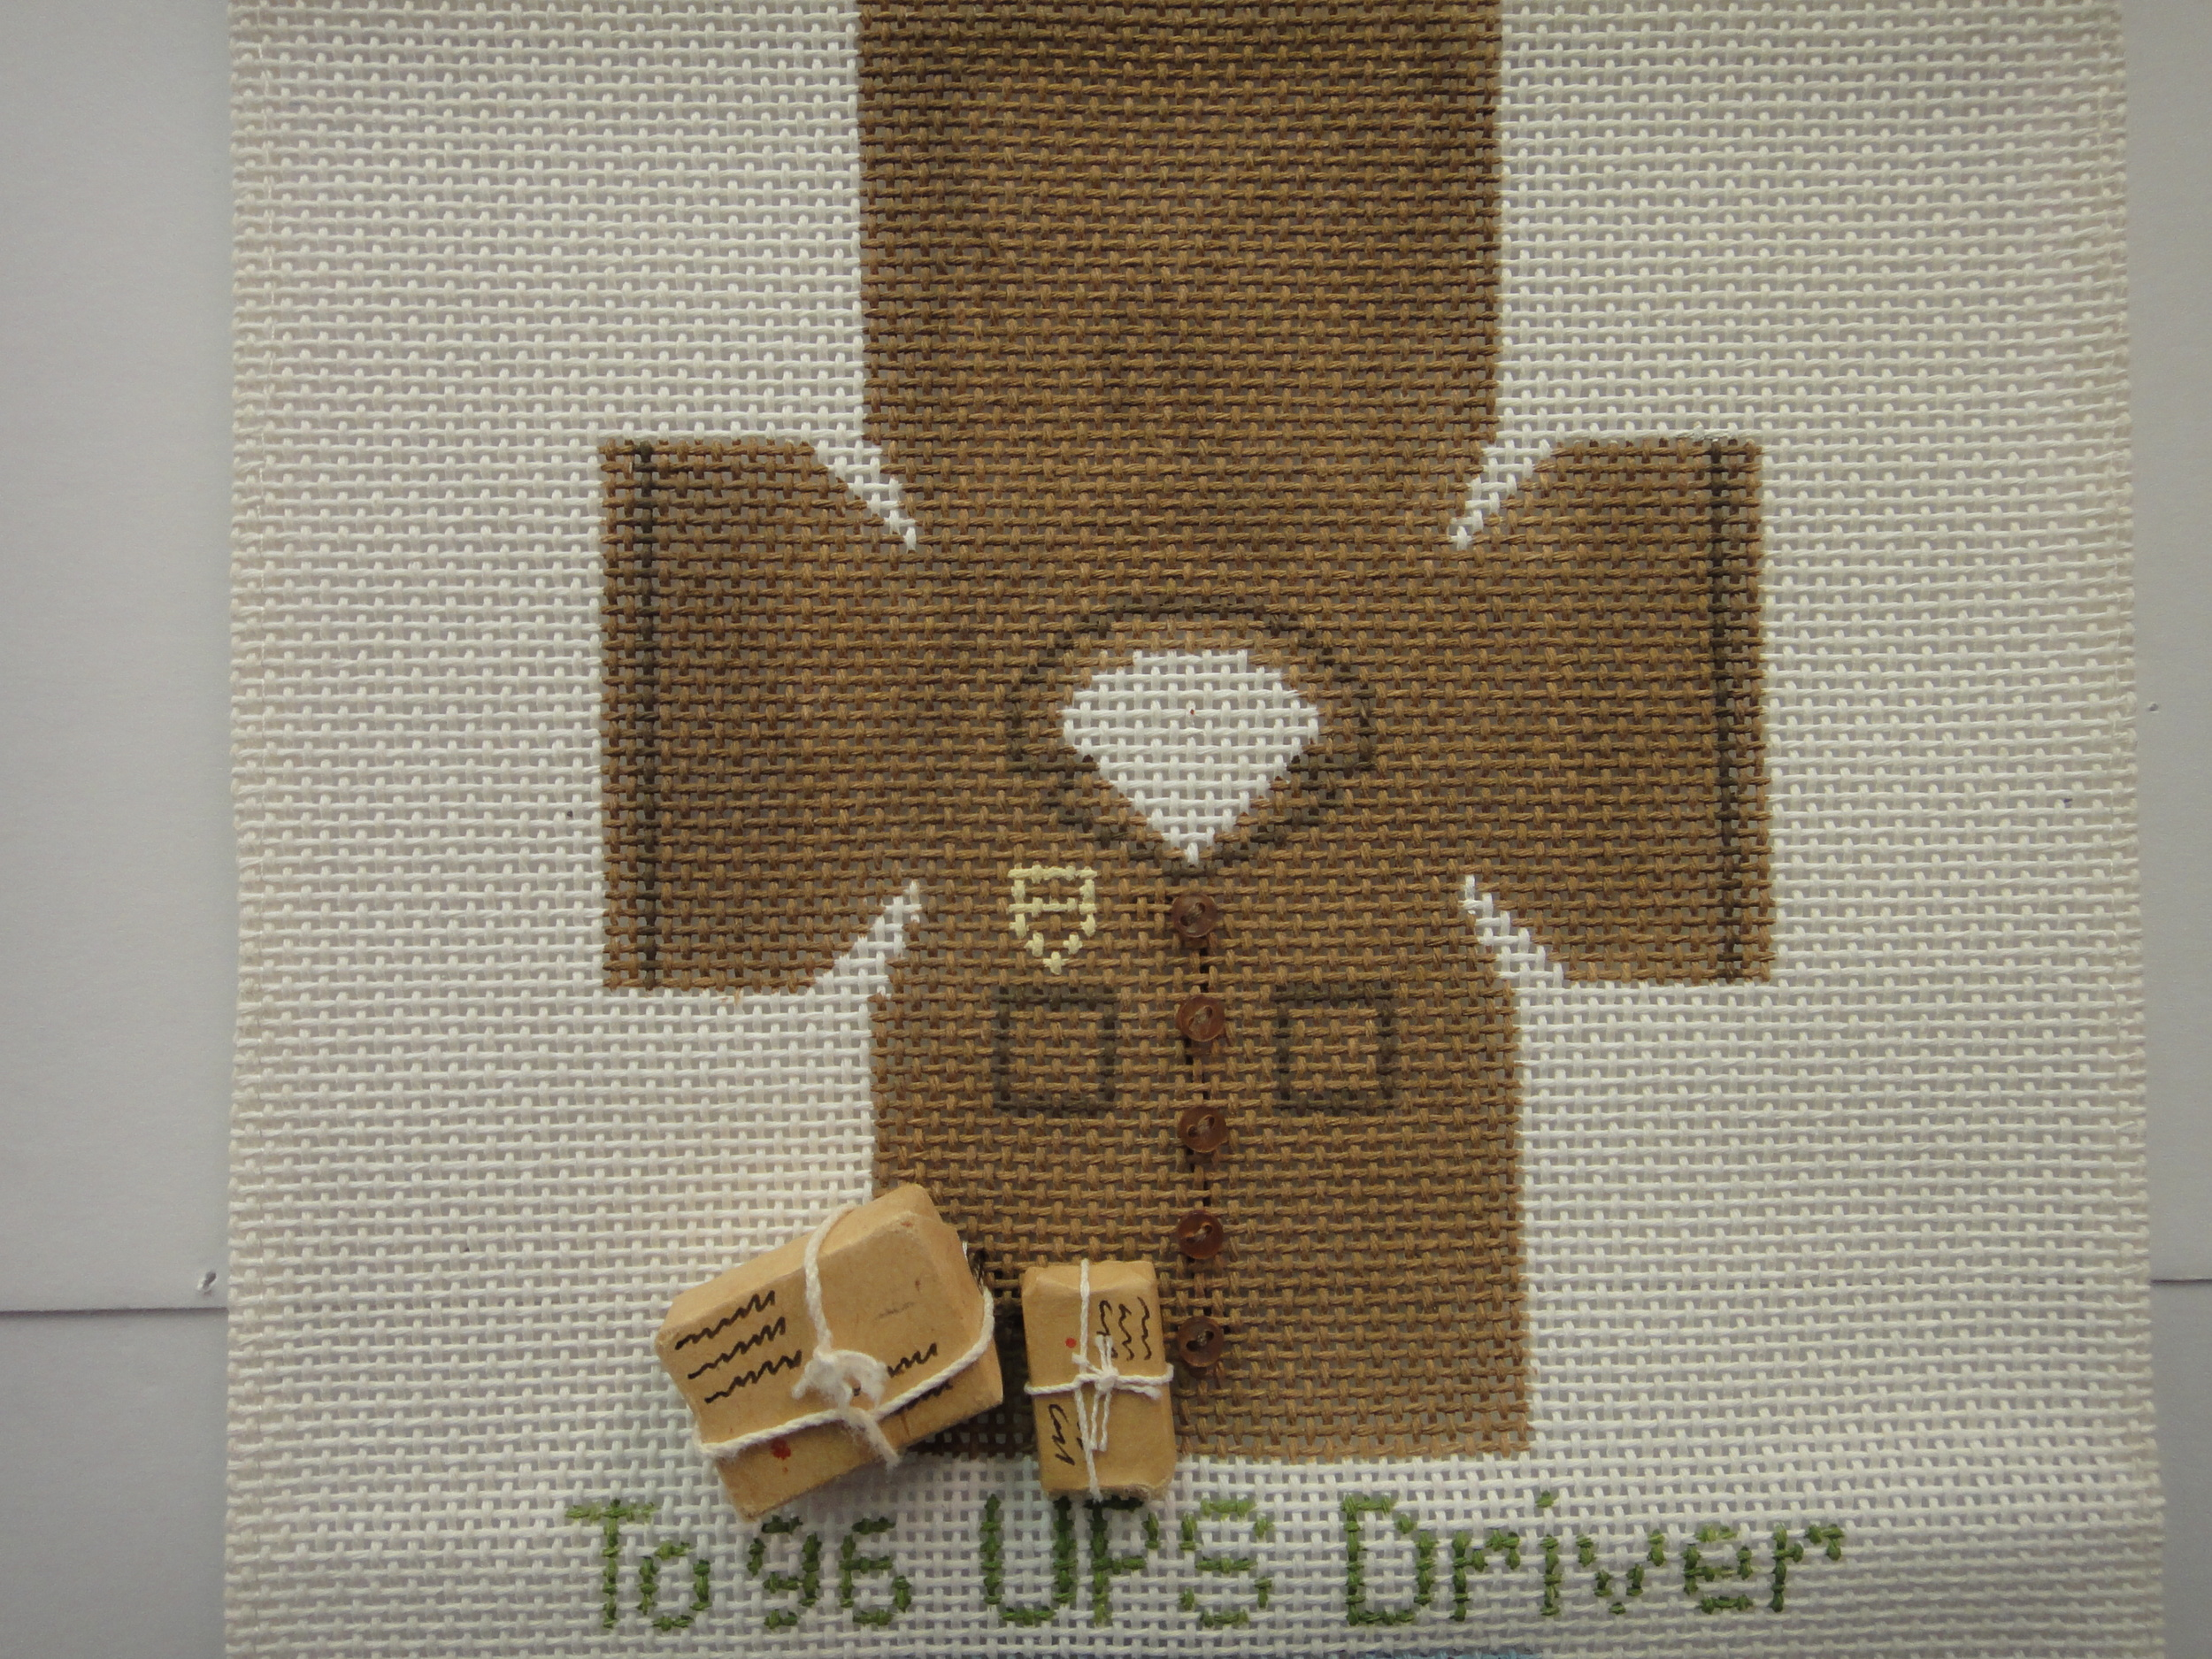 To96 UPS Driver